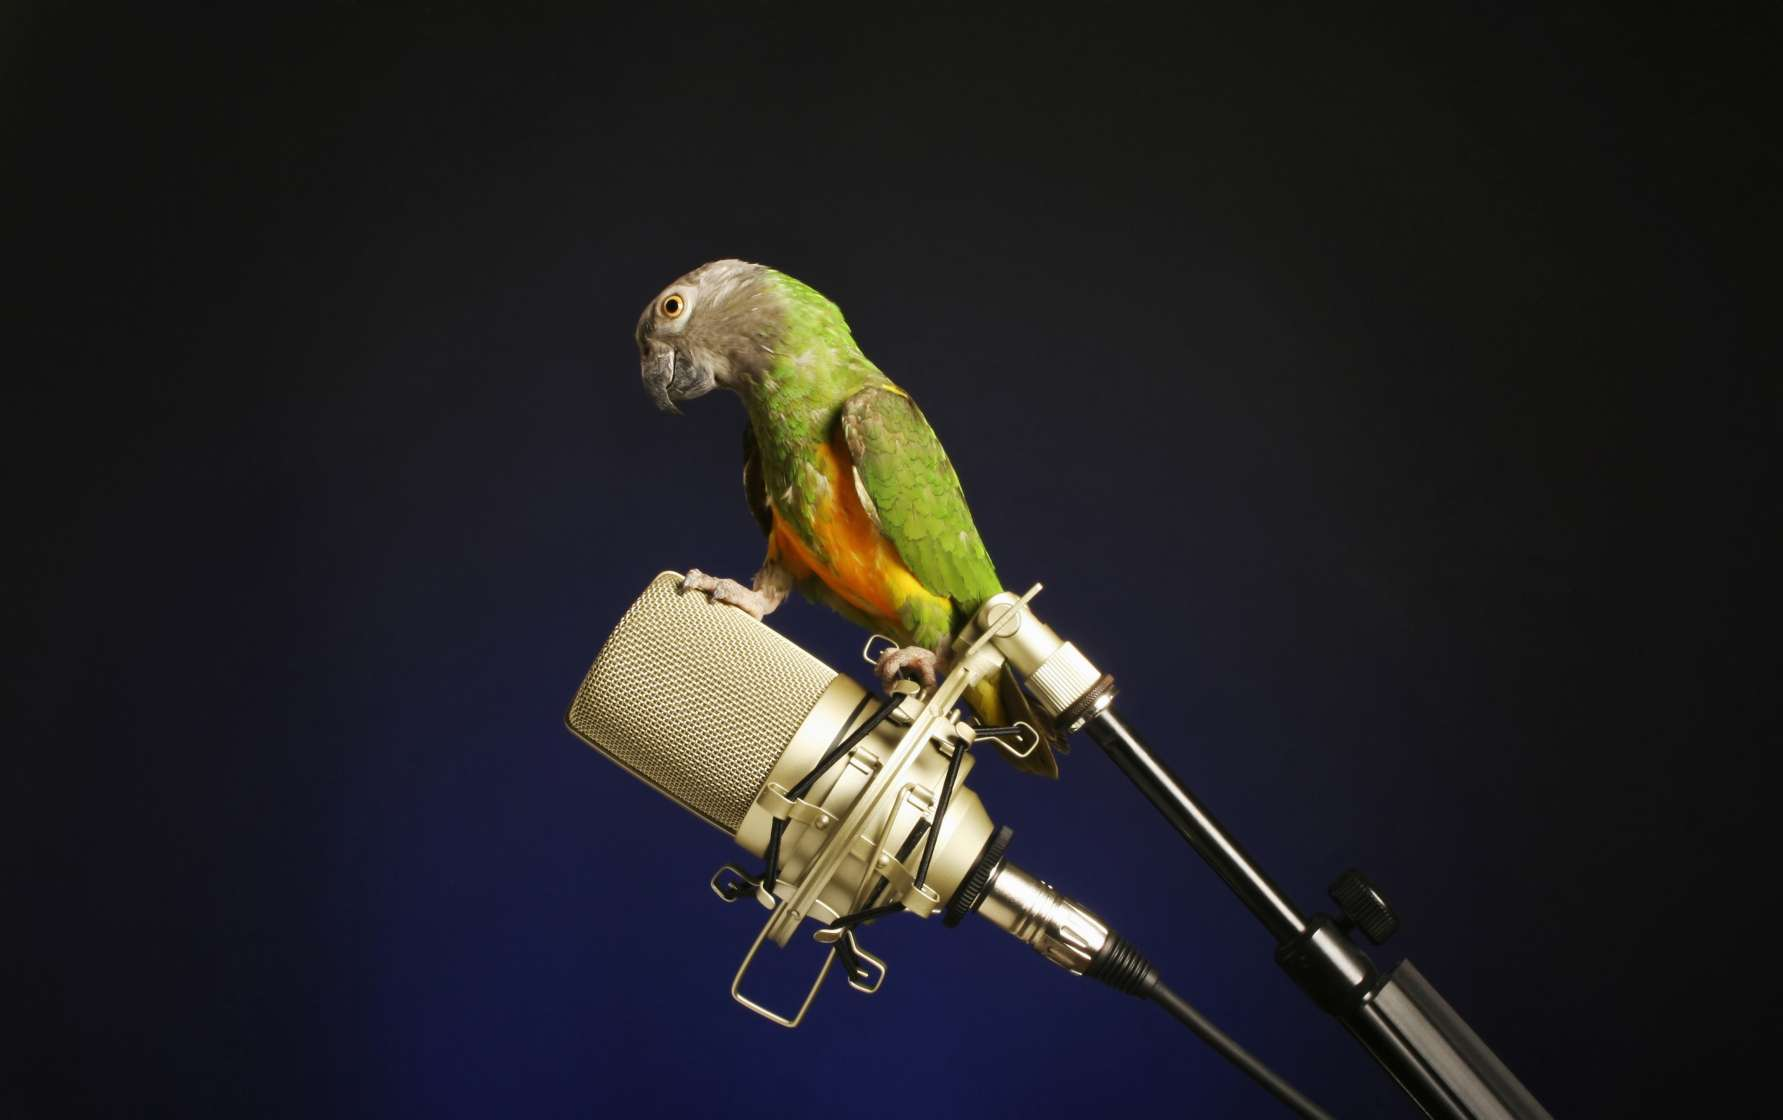 parakeet, microphone, podcast